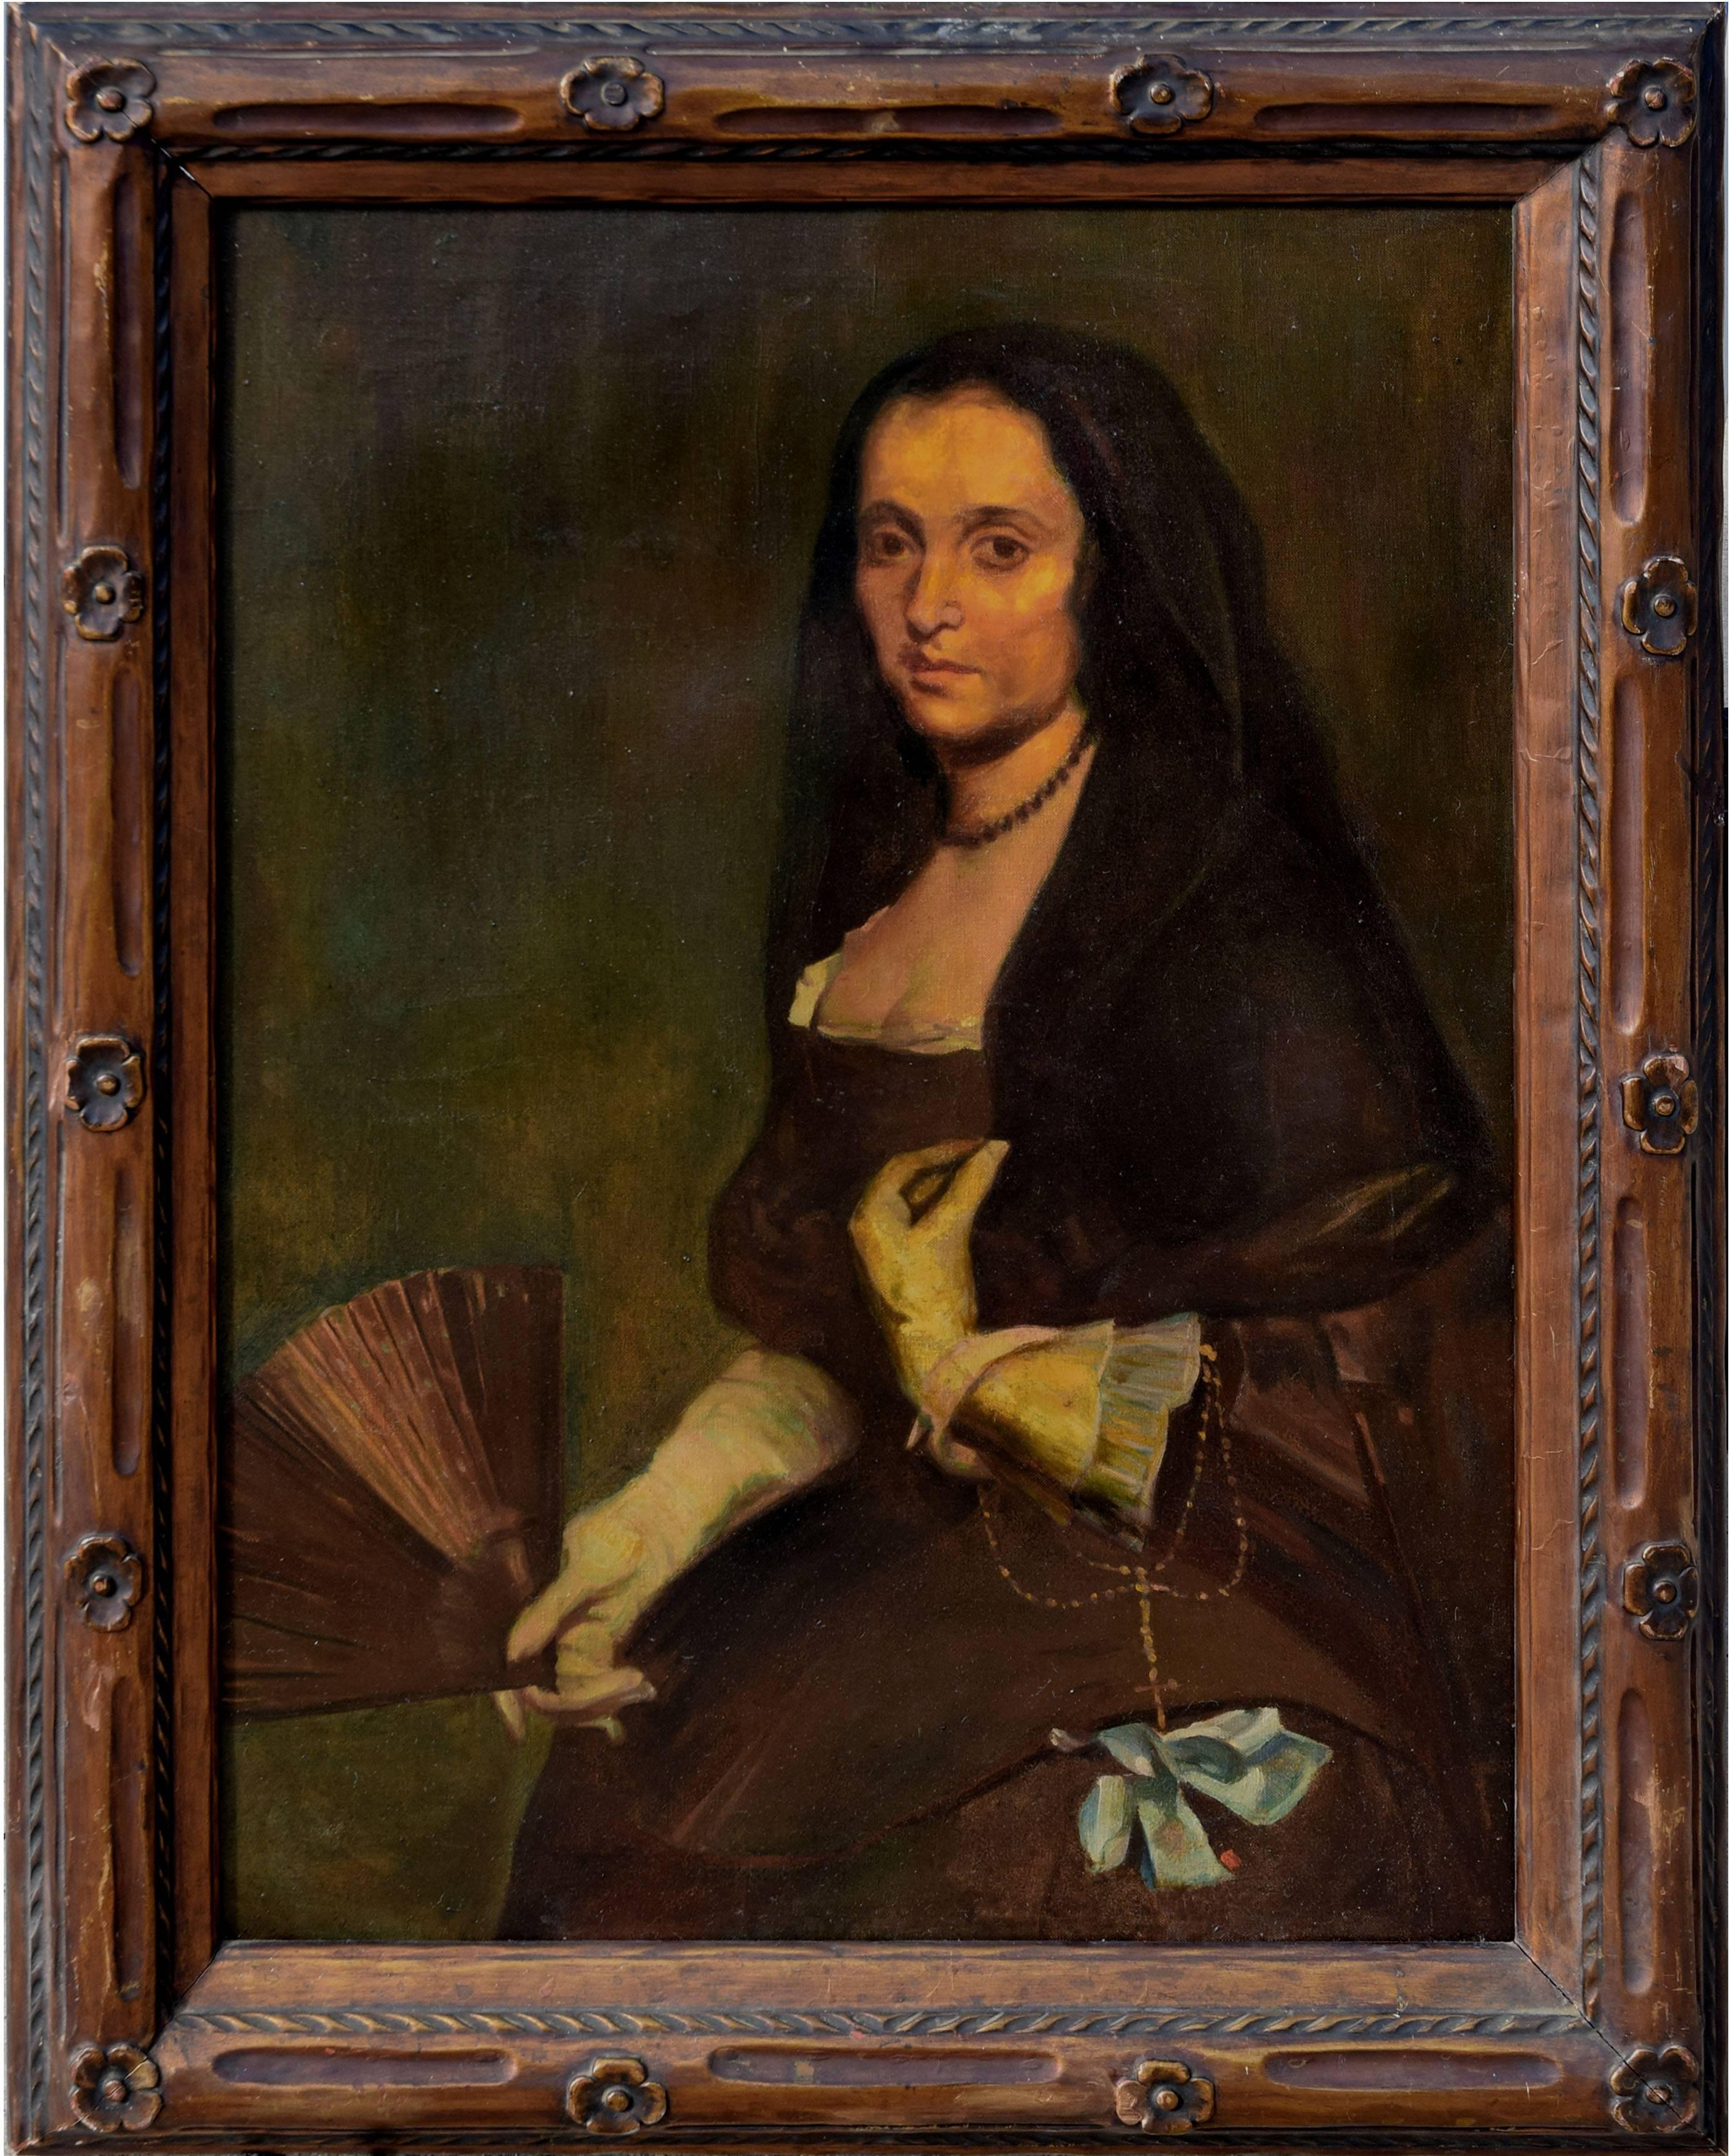 The Lady with a Fan after Diego Velasquez